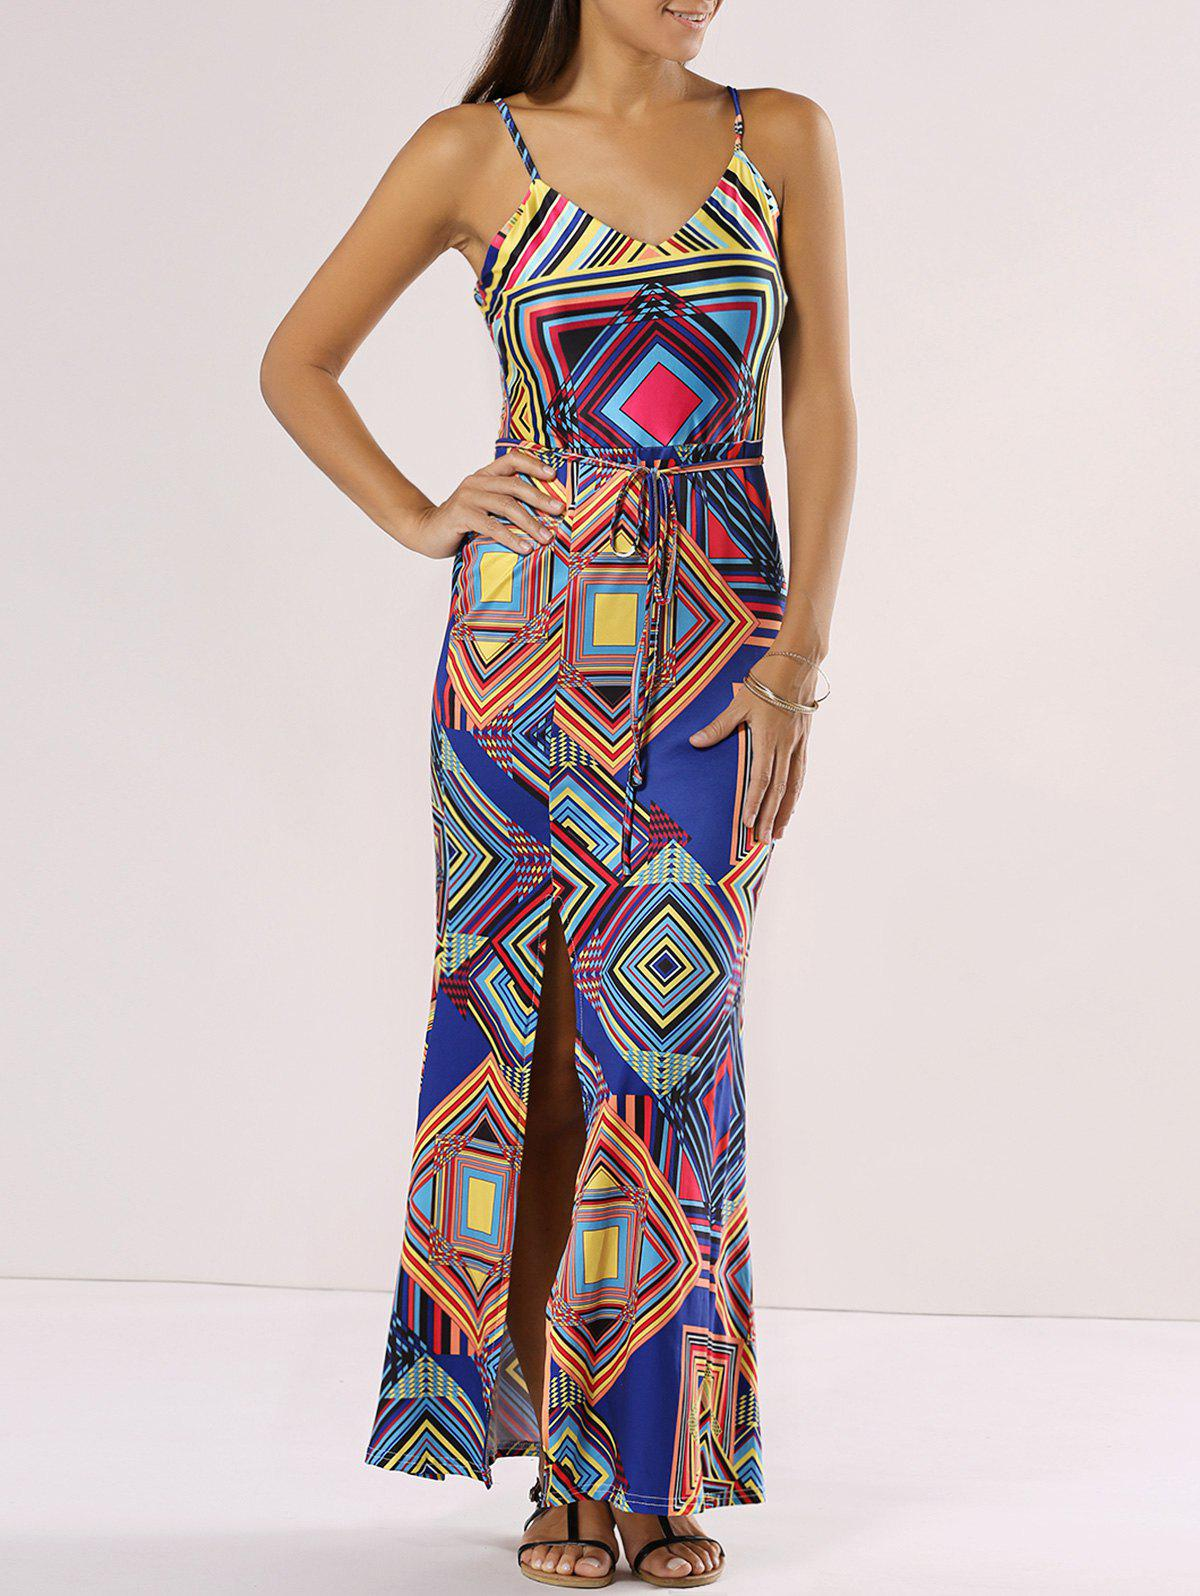 Chic Spaghetti Strap Cut Out Geometric Print Dress - BLUE XL